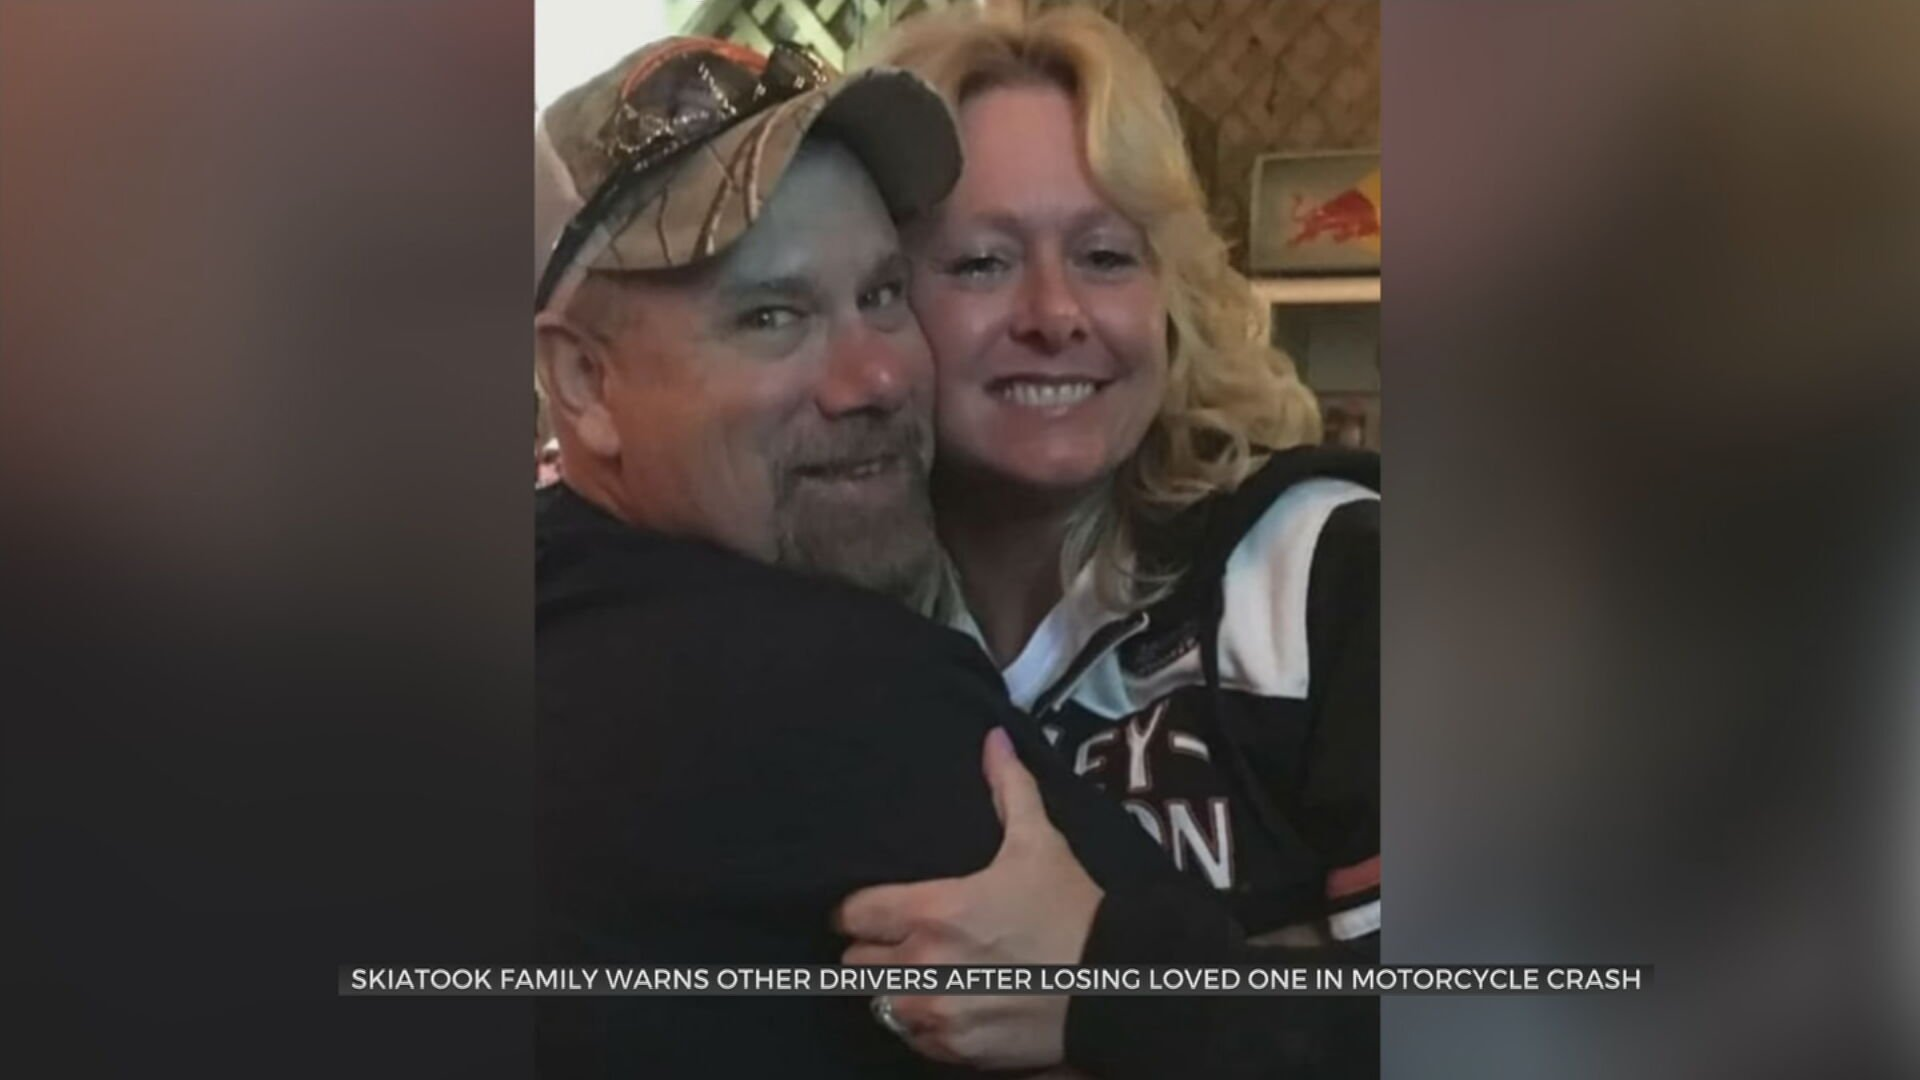 Skiatook Family Warns Drivers After Losing Loved One In Motorcycle Crash